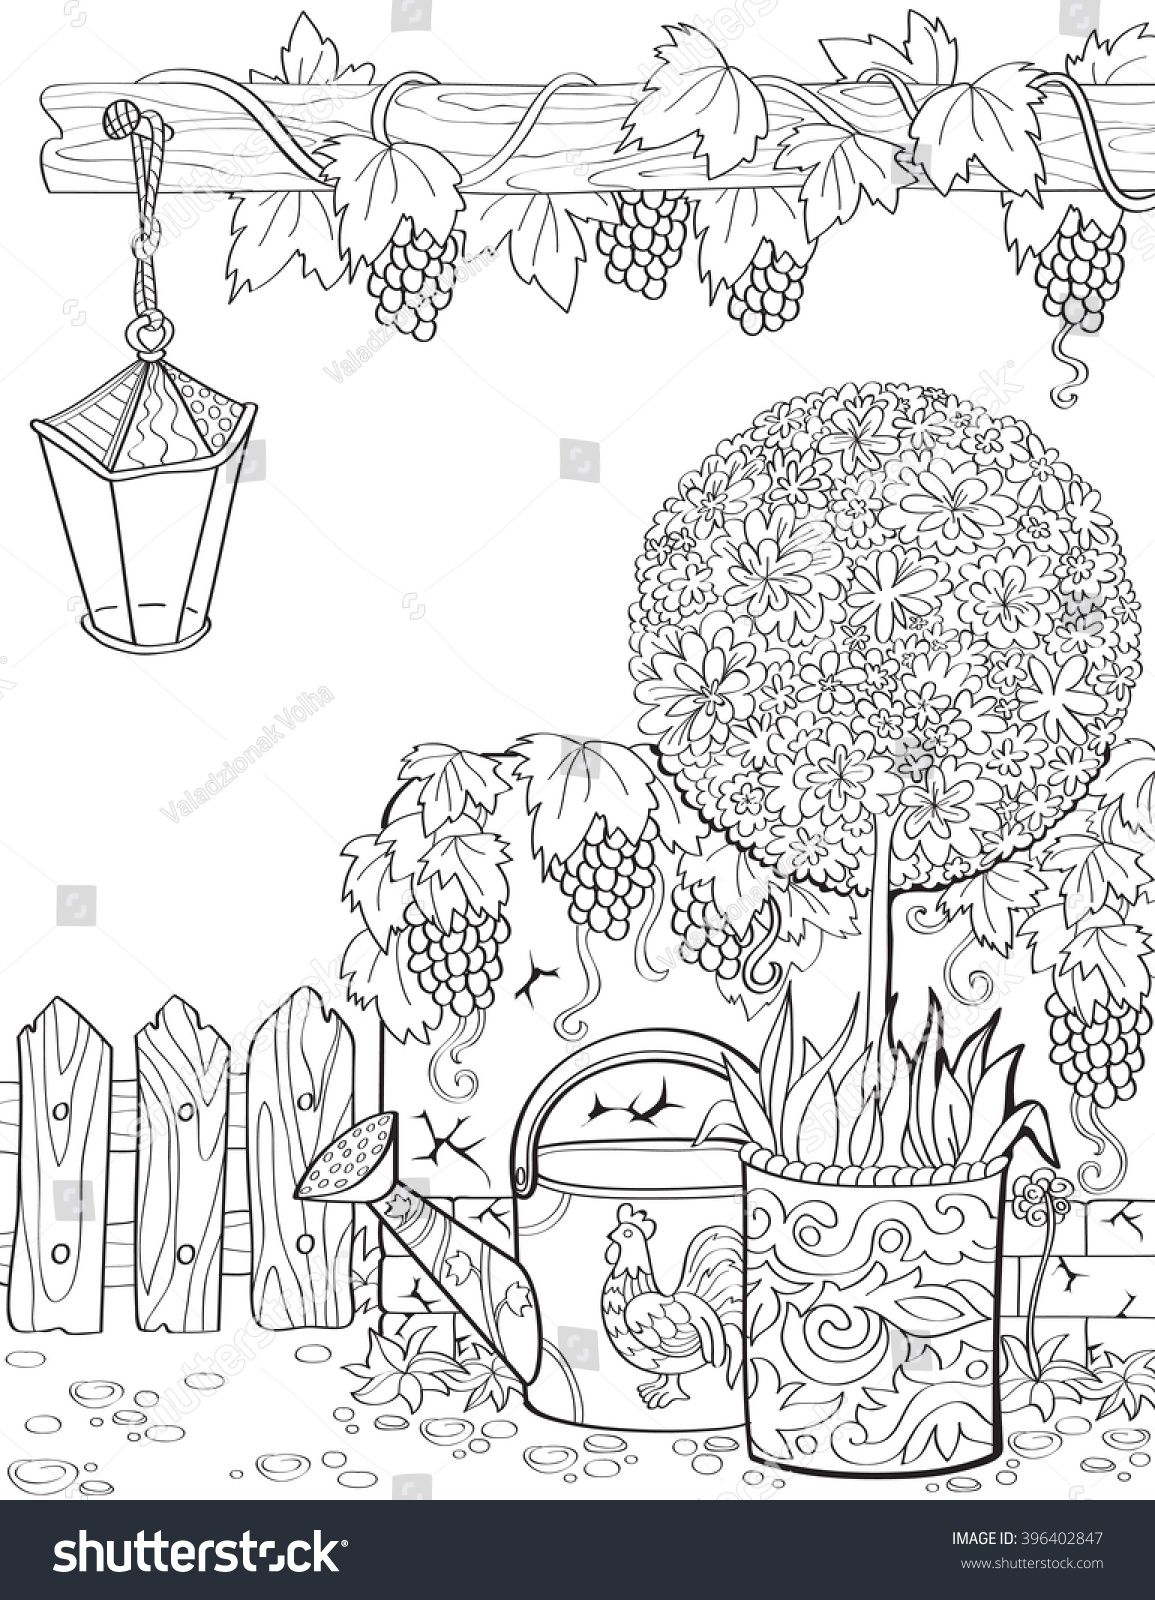 The Vine Coloring Page Yahoo Image Search Results Paper Quilling